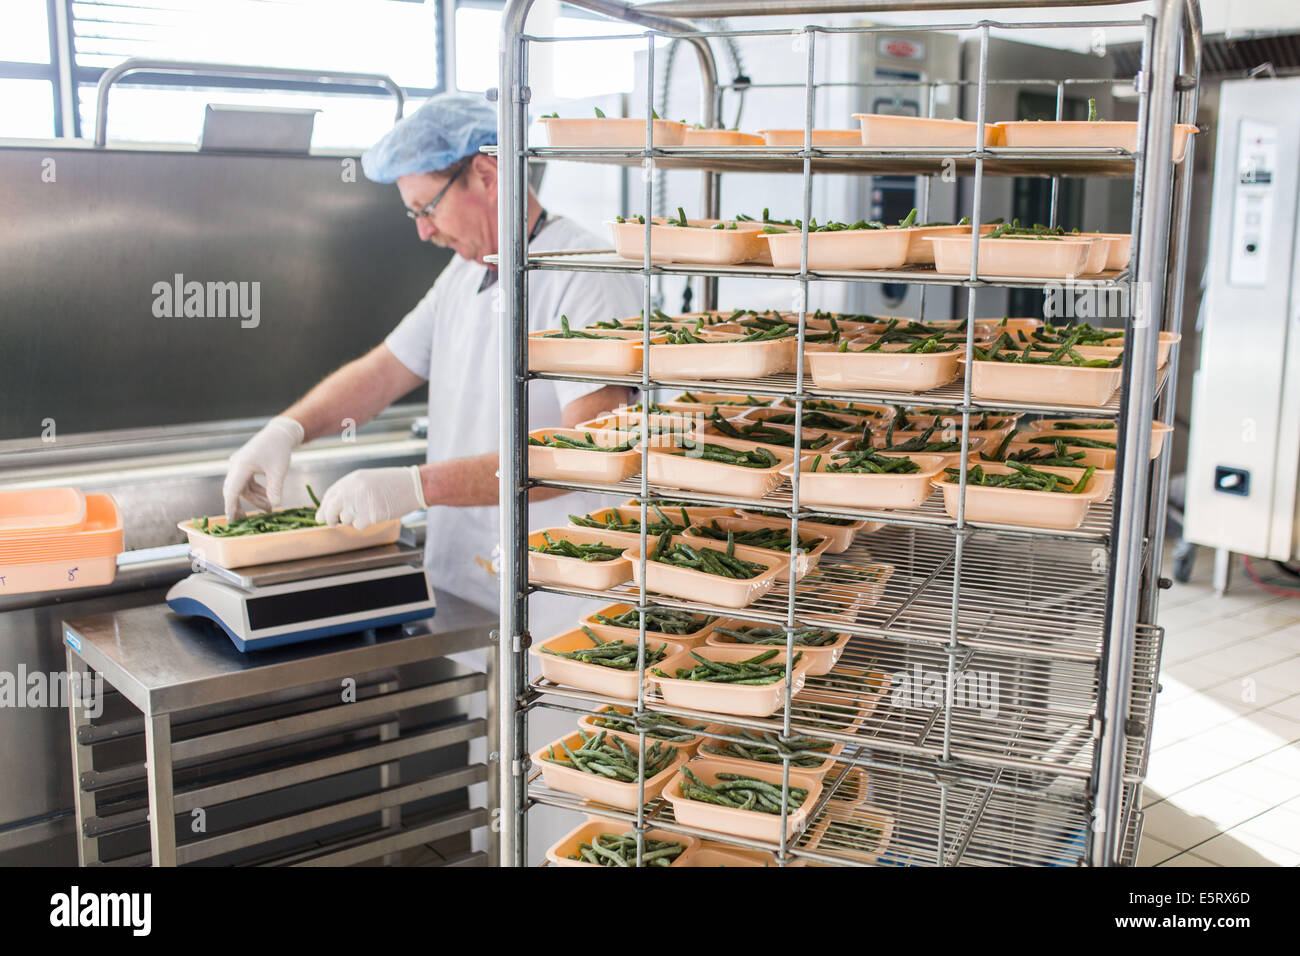 Central Kitchen Of Angoul Me Hospital Stock Photo Royalty Free Image 72440213 Alamy